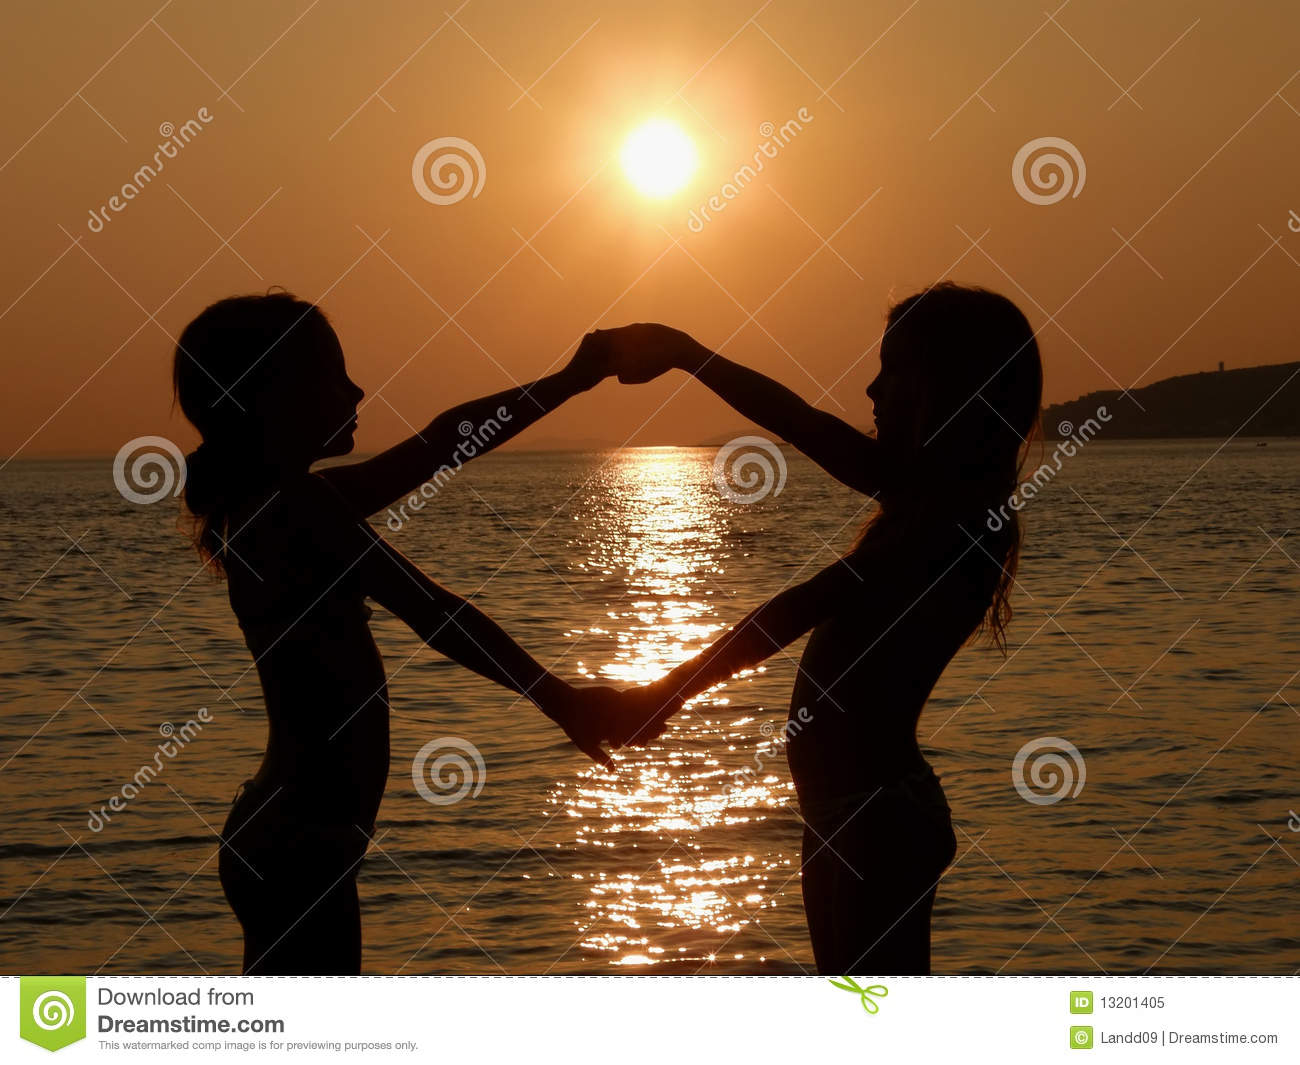 sisters in summer sunset royalty free stock photo image